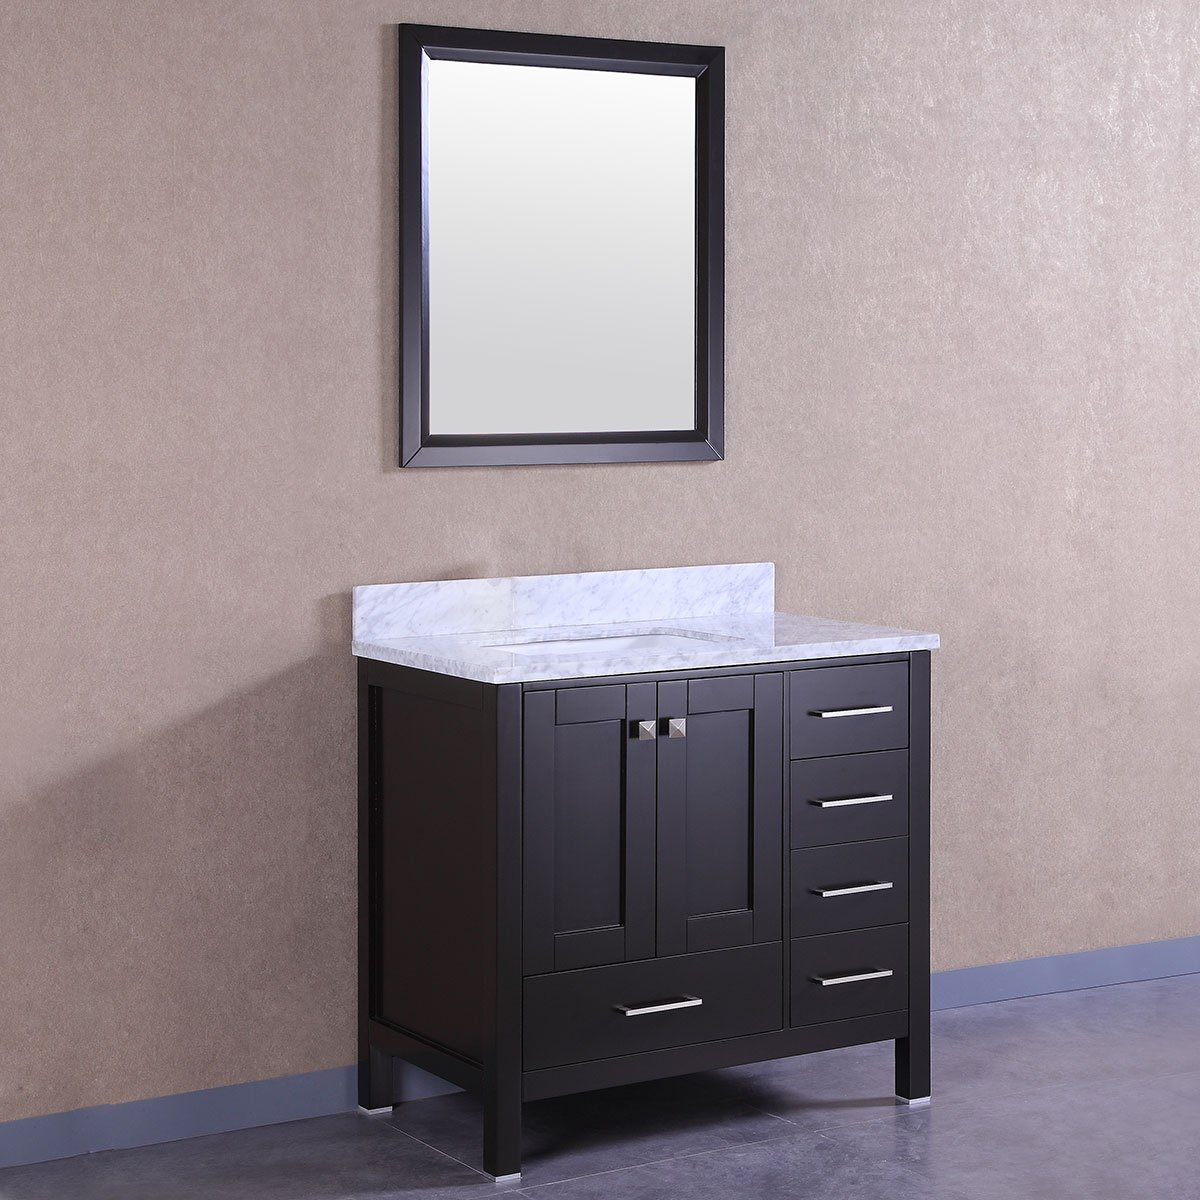 Decoraport 36 In. Freestanding Bathroom Vanity Set with Single Sink and Mirror (A-T9199-36E)